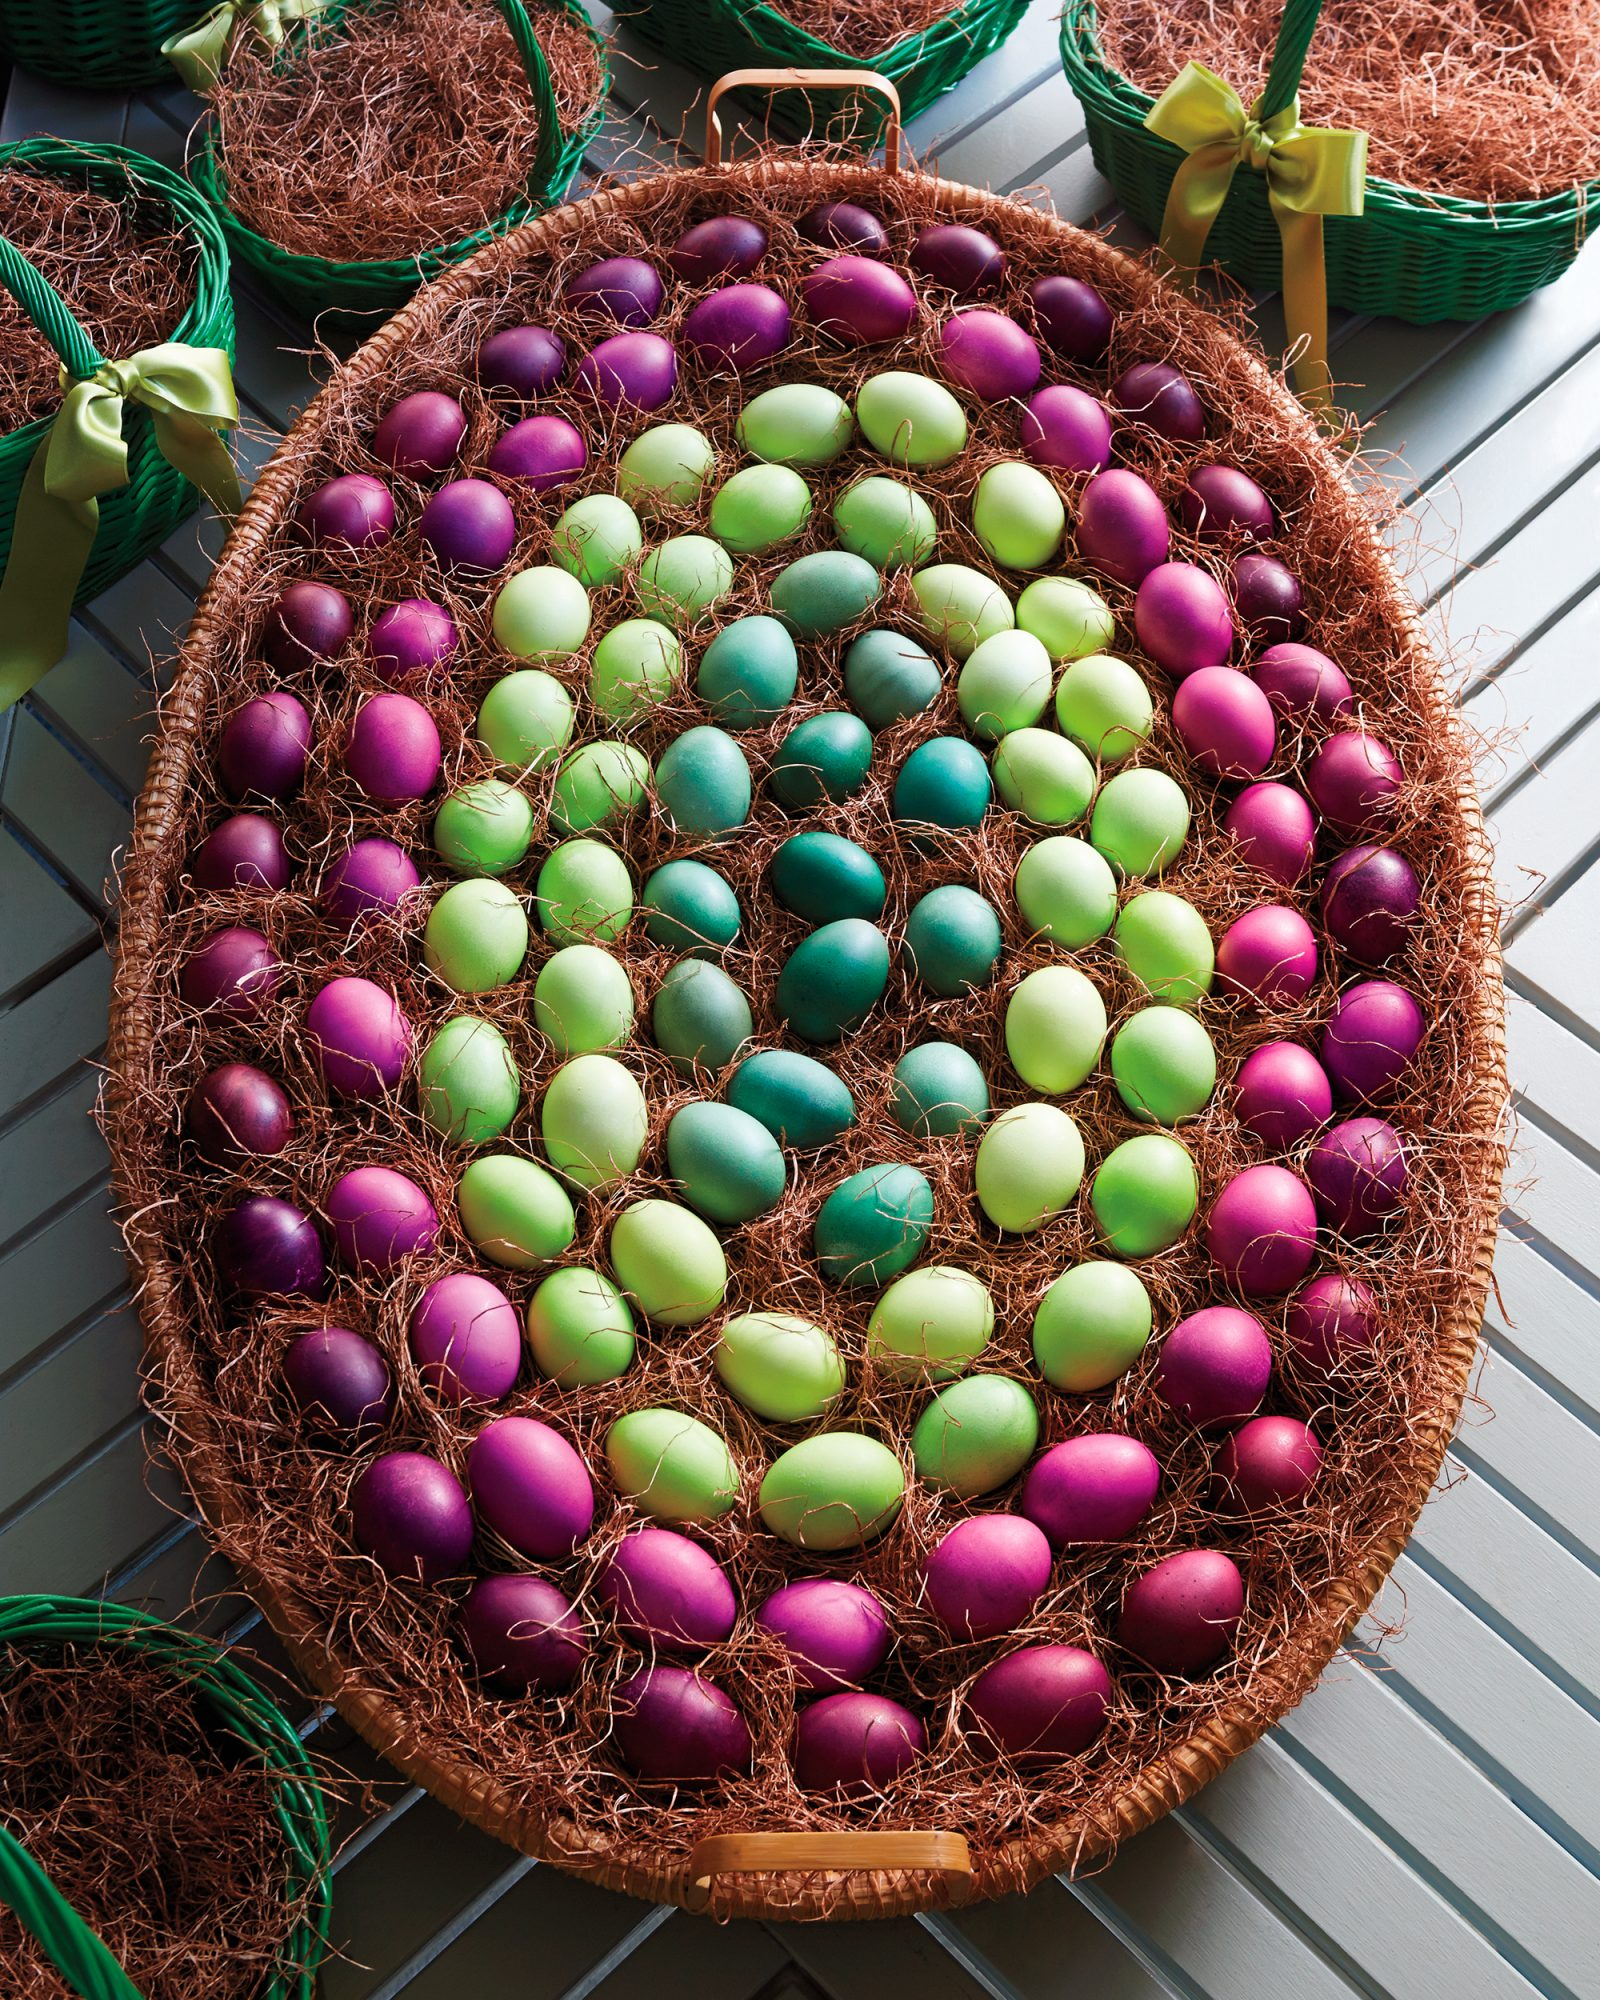 dyed Easter eggs in a large basket